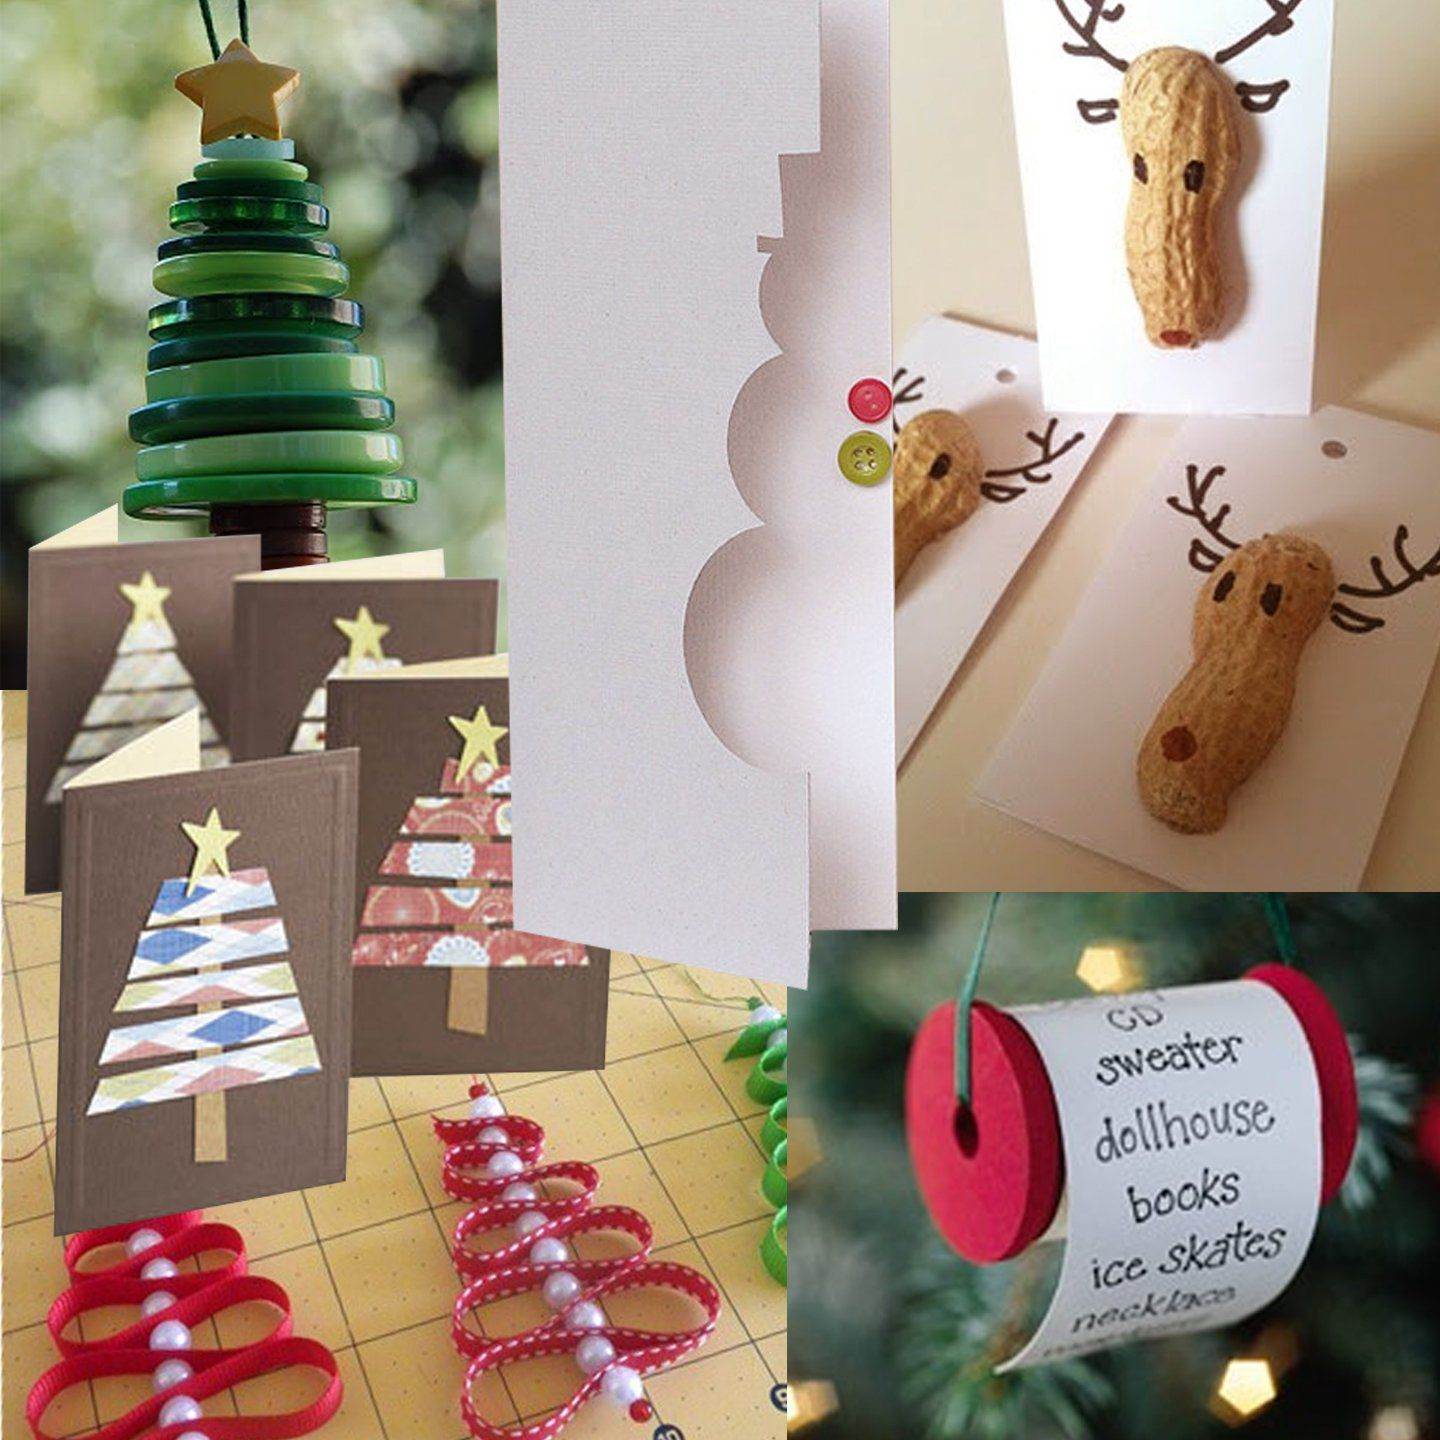 Christmas room ideas diy decorations xmas decorations Diy christmas tree decorations